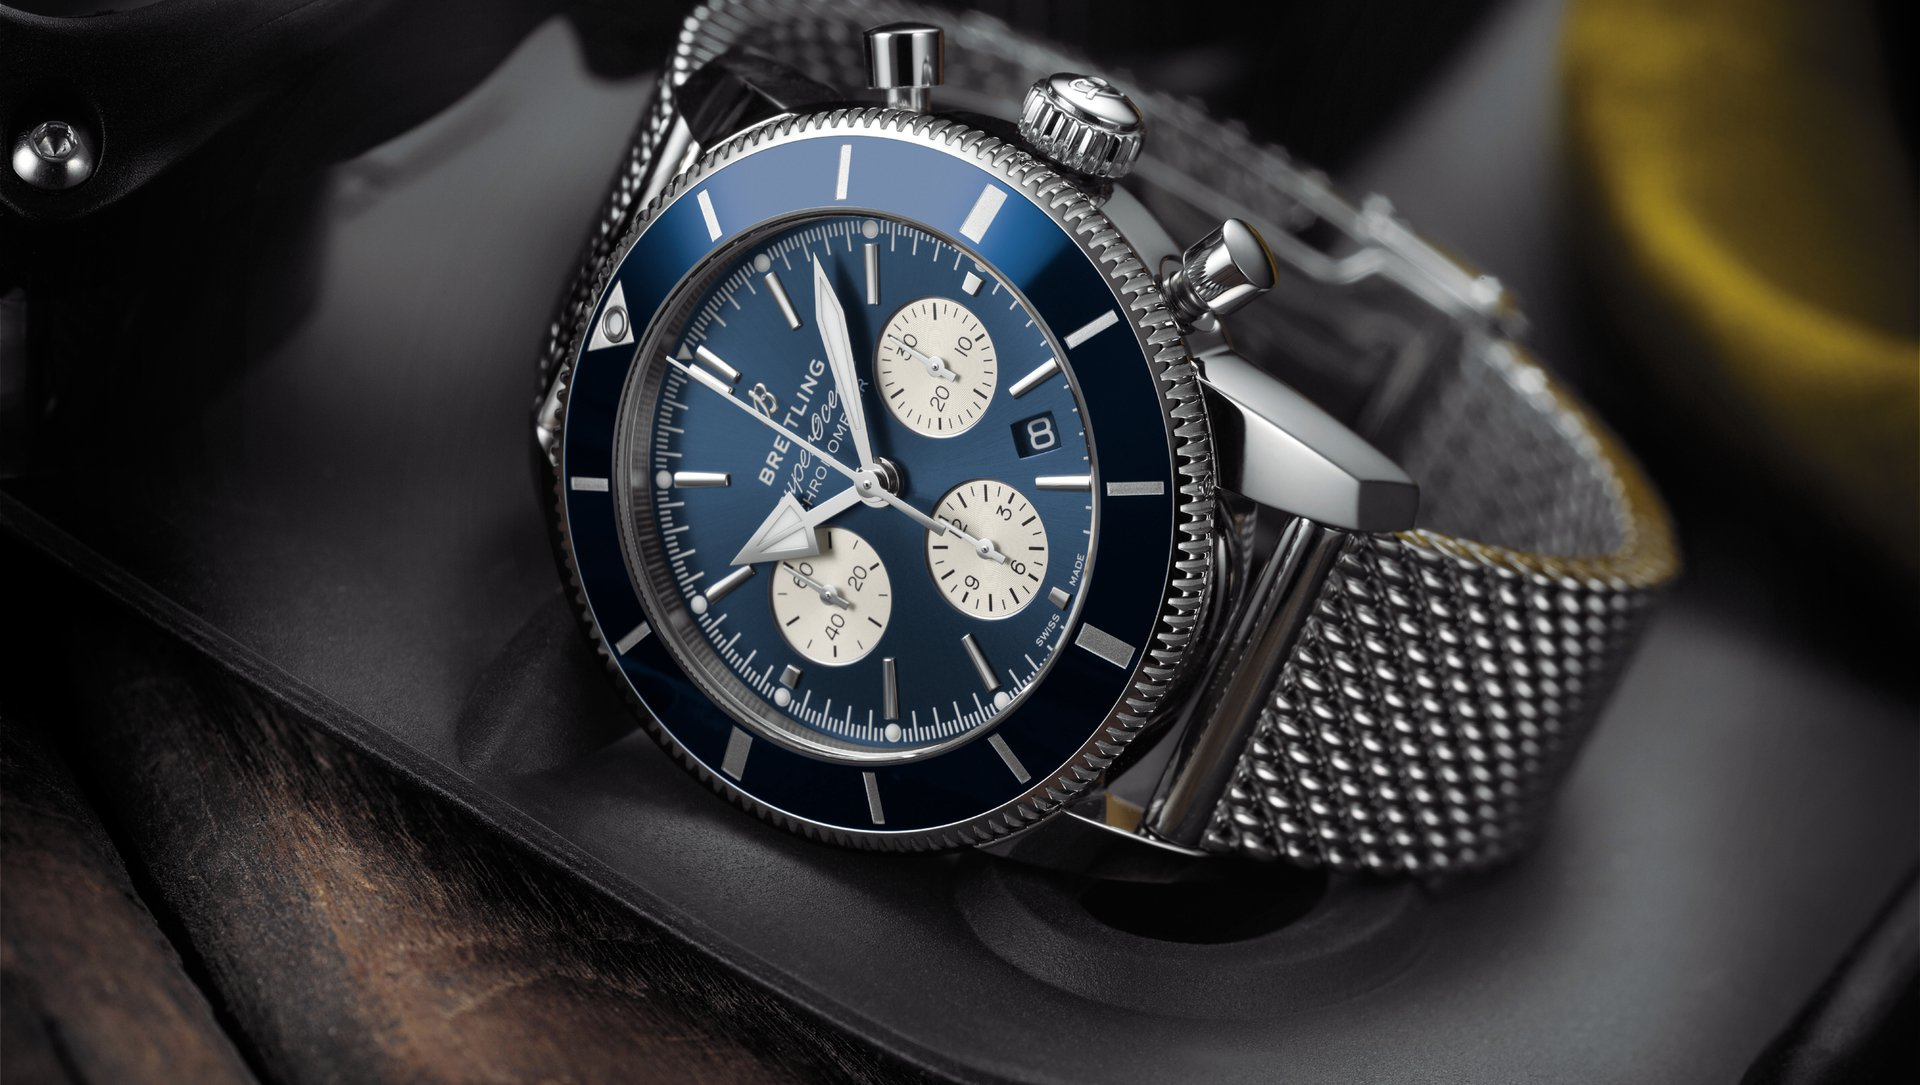 https://static.breitling.cn/media/wysiwyg/news/18-03-21/_1.jpg